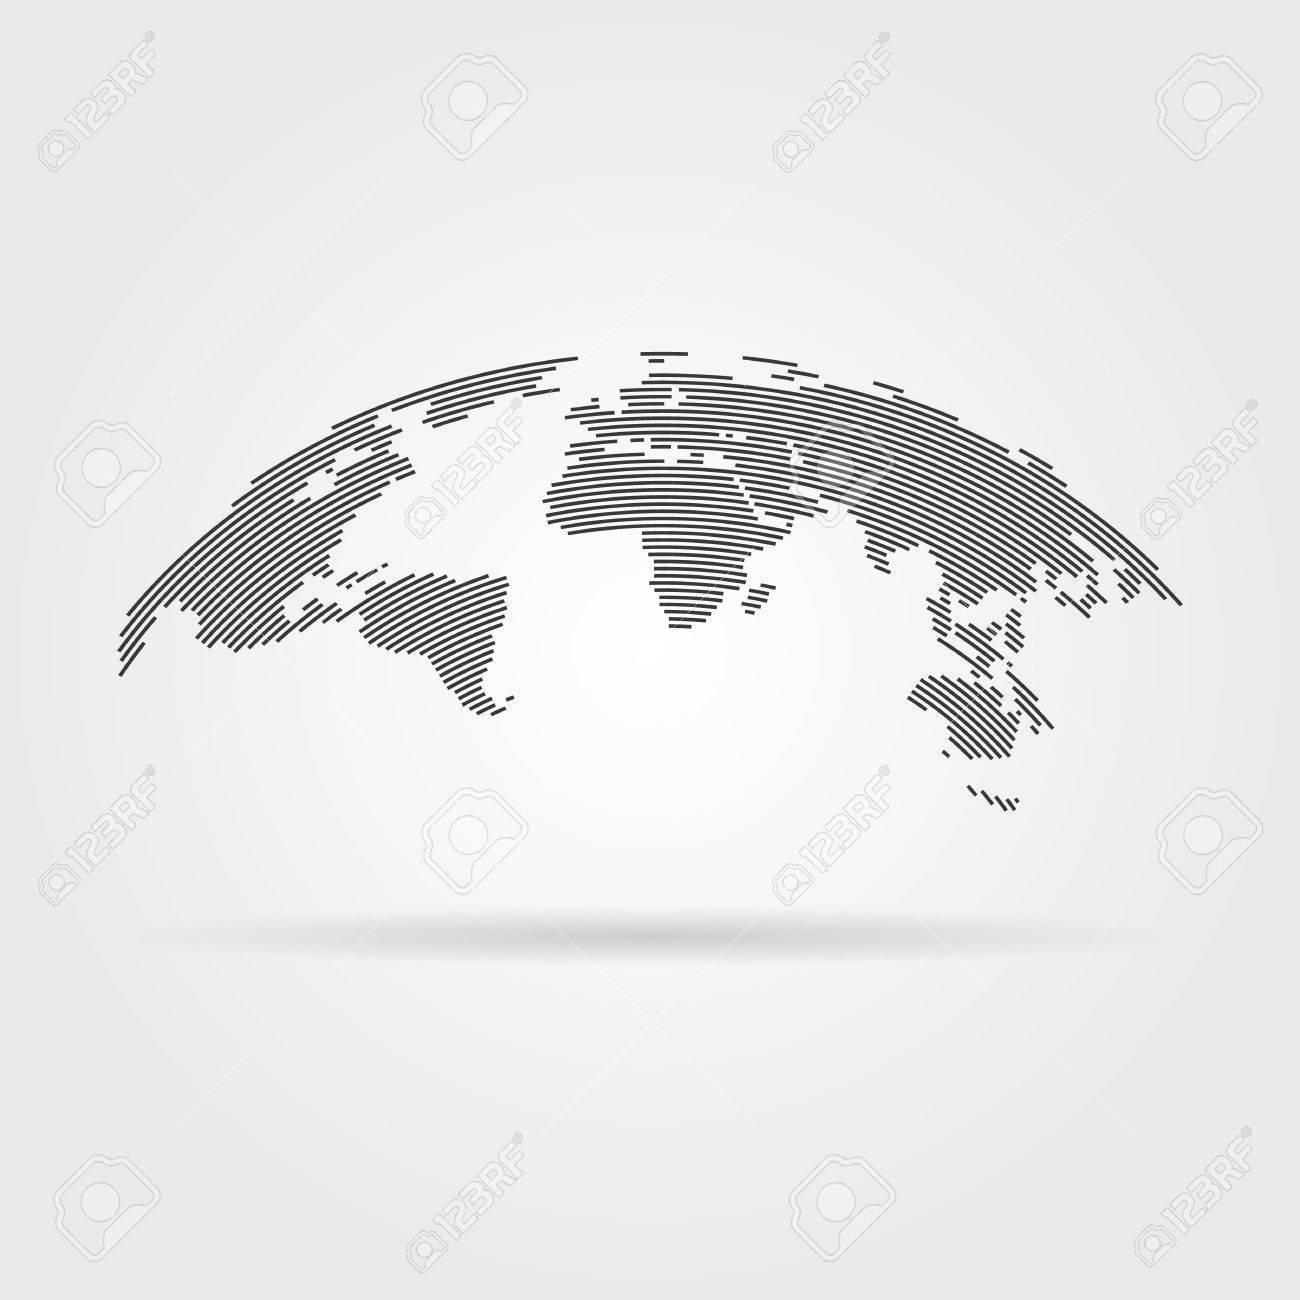 simple black world map from thin line. concept of infographics element, trip around the world, globalization. isolated on gray background. flat style trend modern logo design vector illustration - 57651517